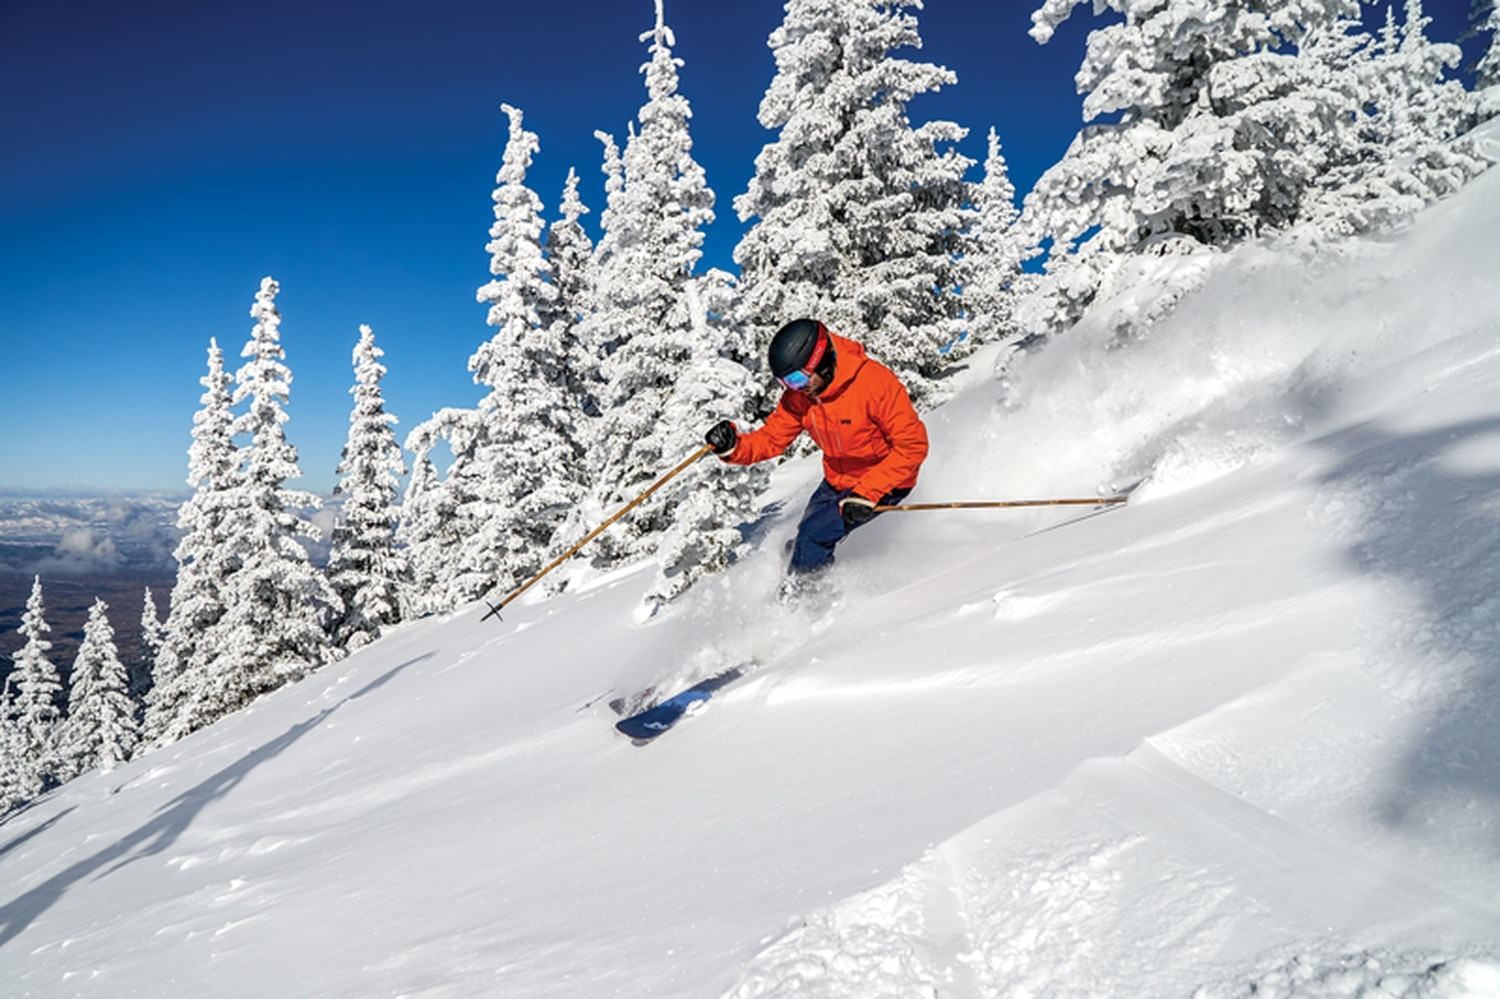 Ski industry experts in the state say one of the sector's greatest challenges is the misperception that it doesn't snow in New Mexico.